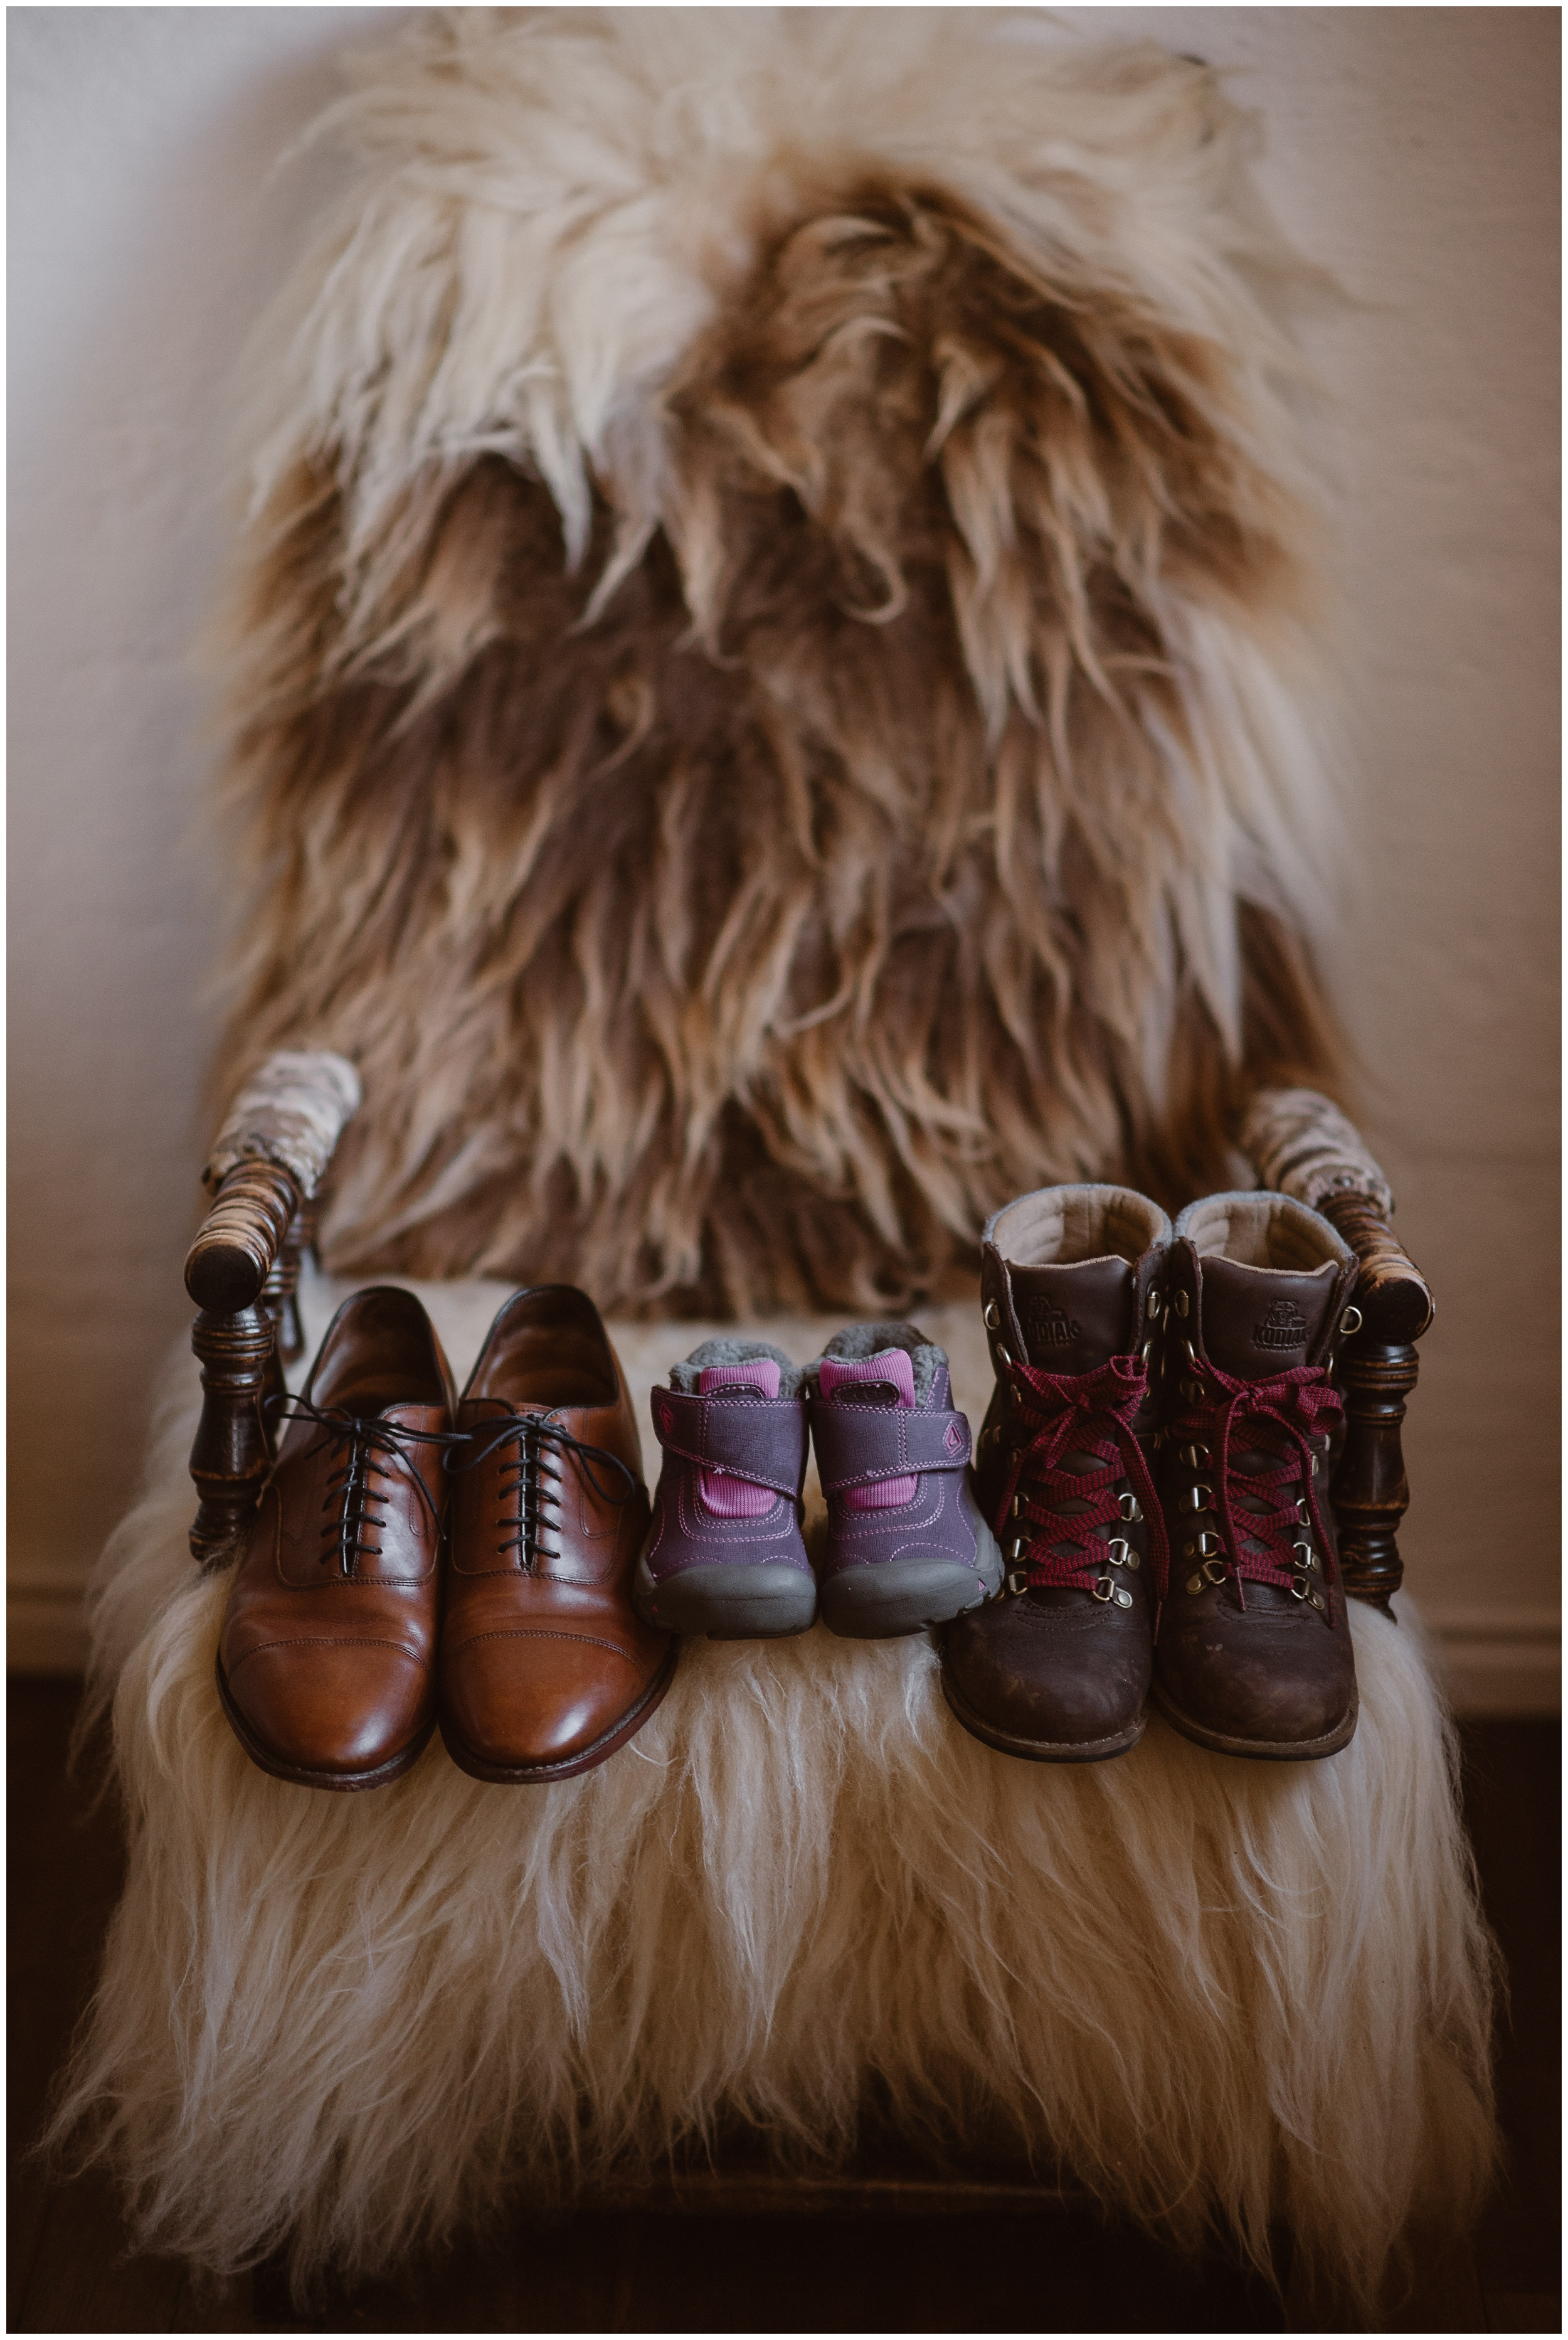 A furry, fuzzy chair is shown in this picture captured by elopement wedding photographer Adventure Instead. On the chair sit three pairs of shoes — men's dress shoes, hiking boot,s and a pair of tiny child's shoes. Including your child in your small simple wedding can mean incorporate your own unique eloping ideas.